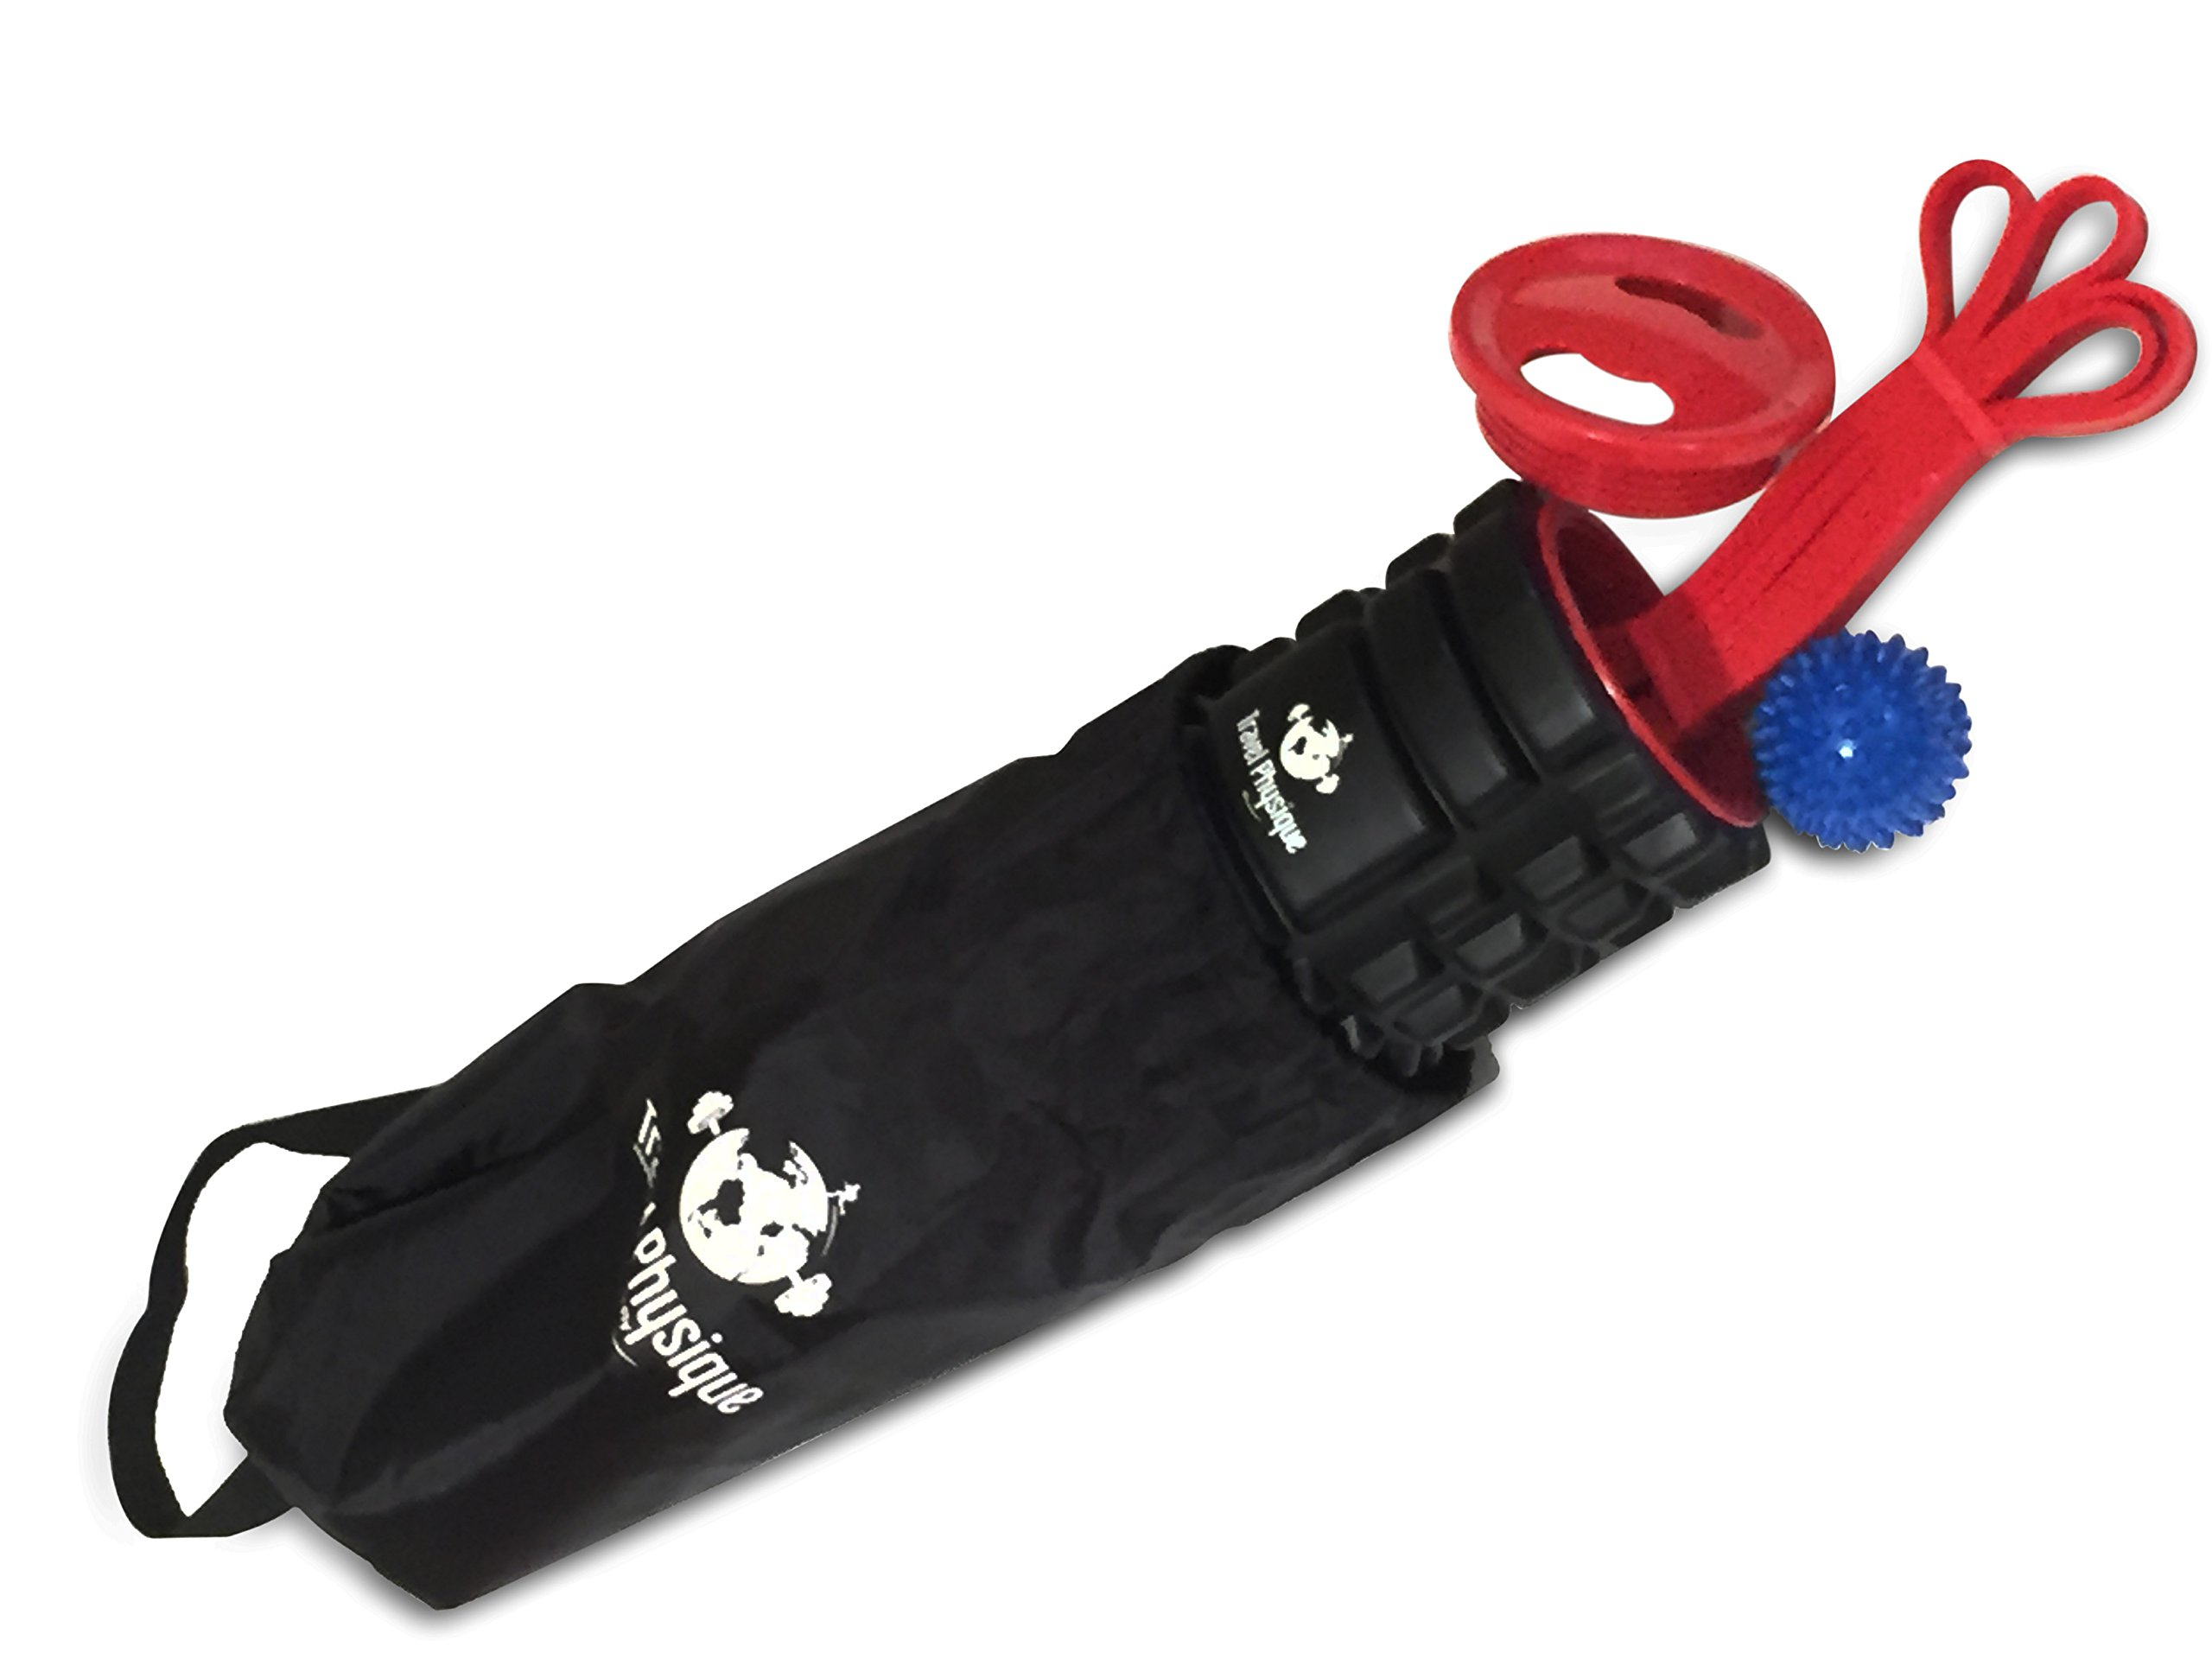 Travel Physique: Portable Muscle Mobility & Recovery Kit (13 inches long) - Portable Deep Tissue Foam Roller + Reflexology Massage Ball + Durable Resistance Band. Includes FREE Travel Bag!